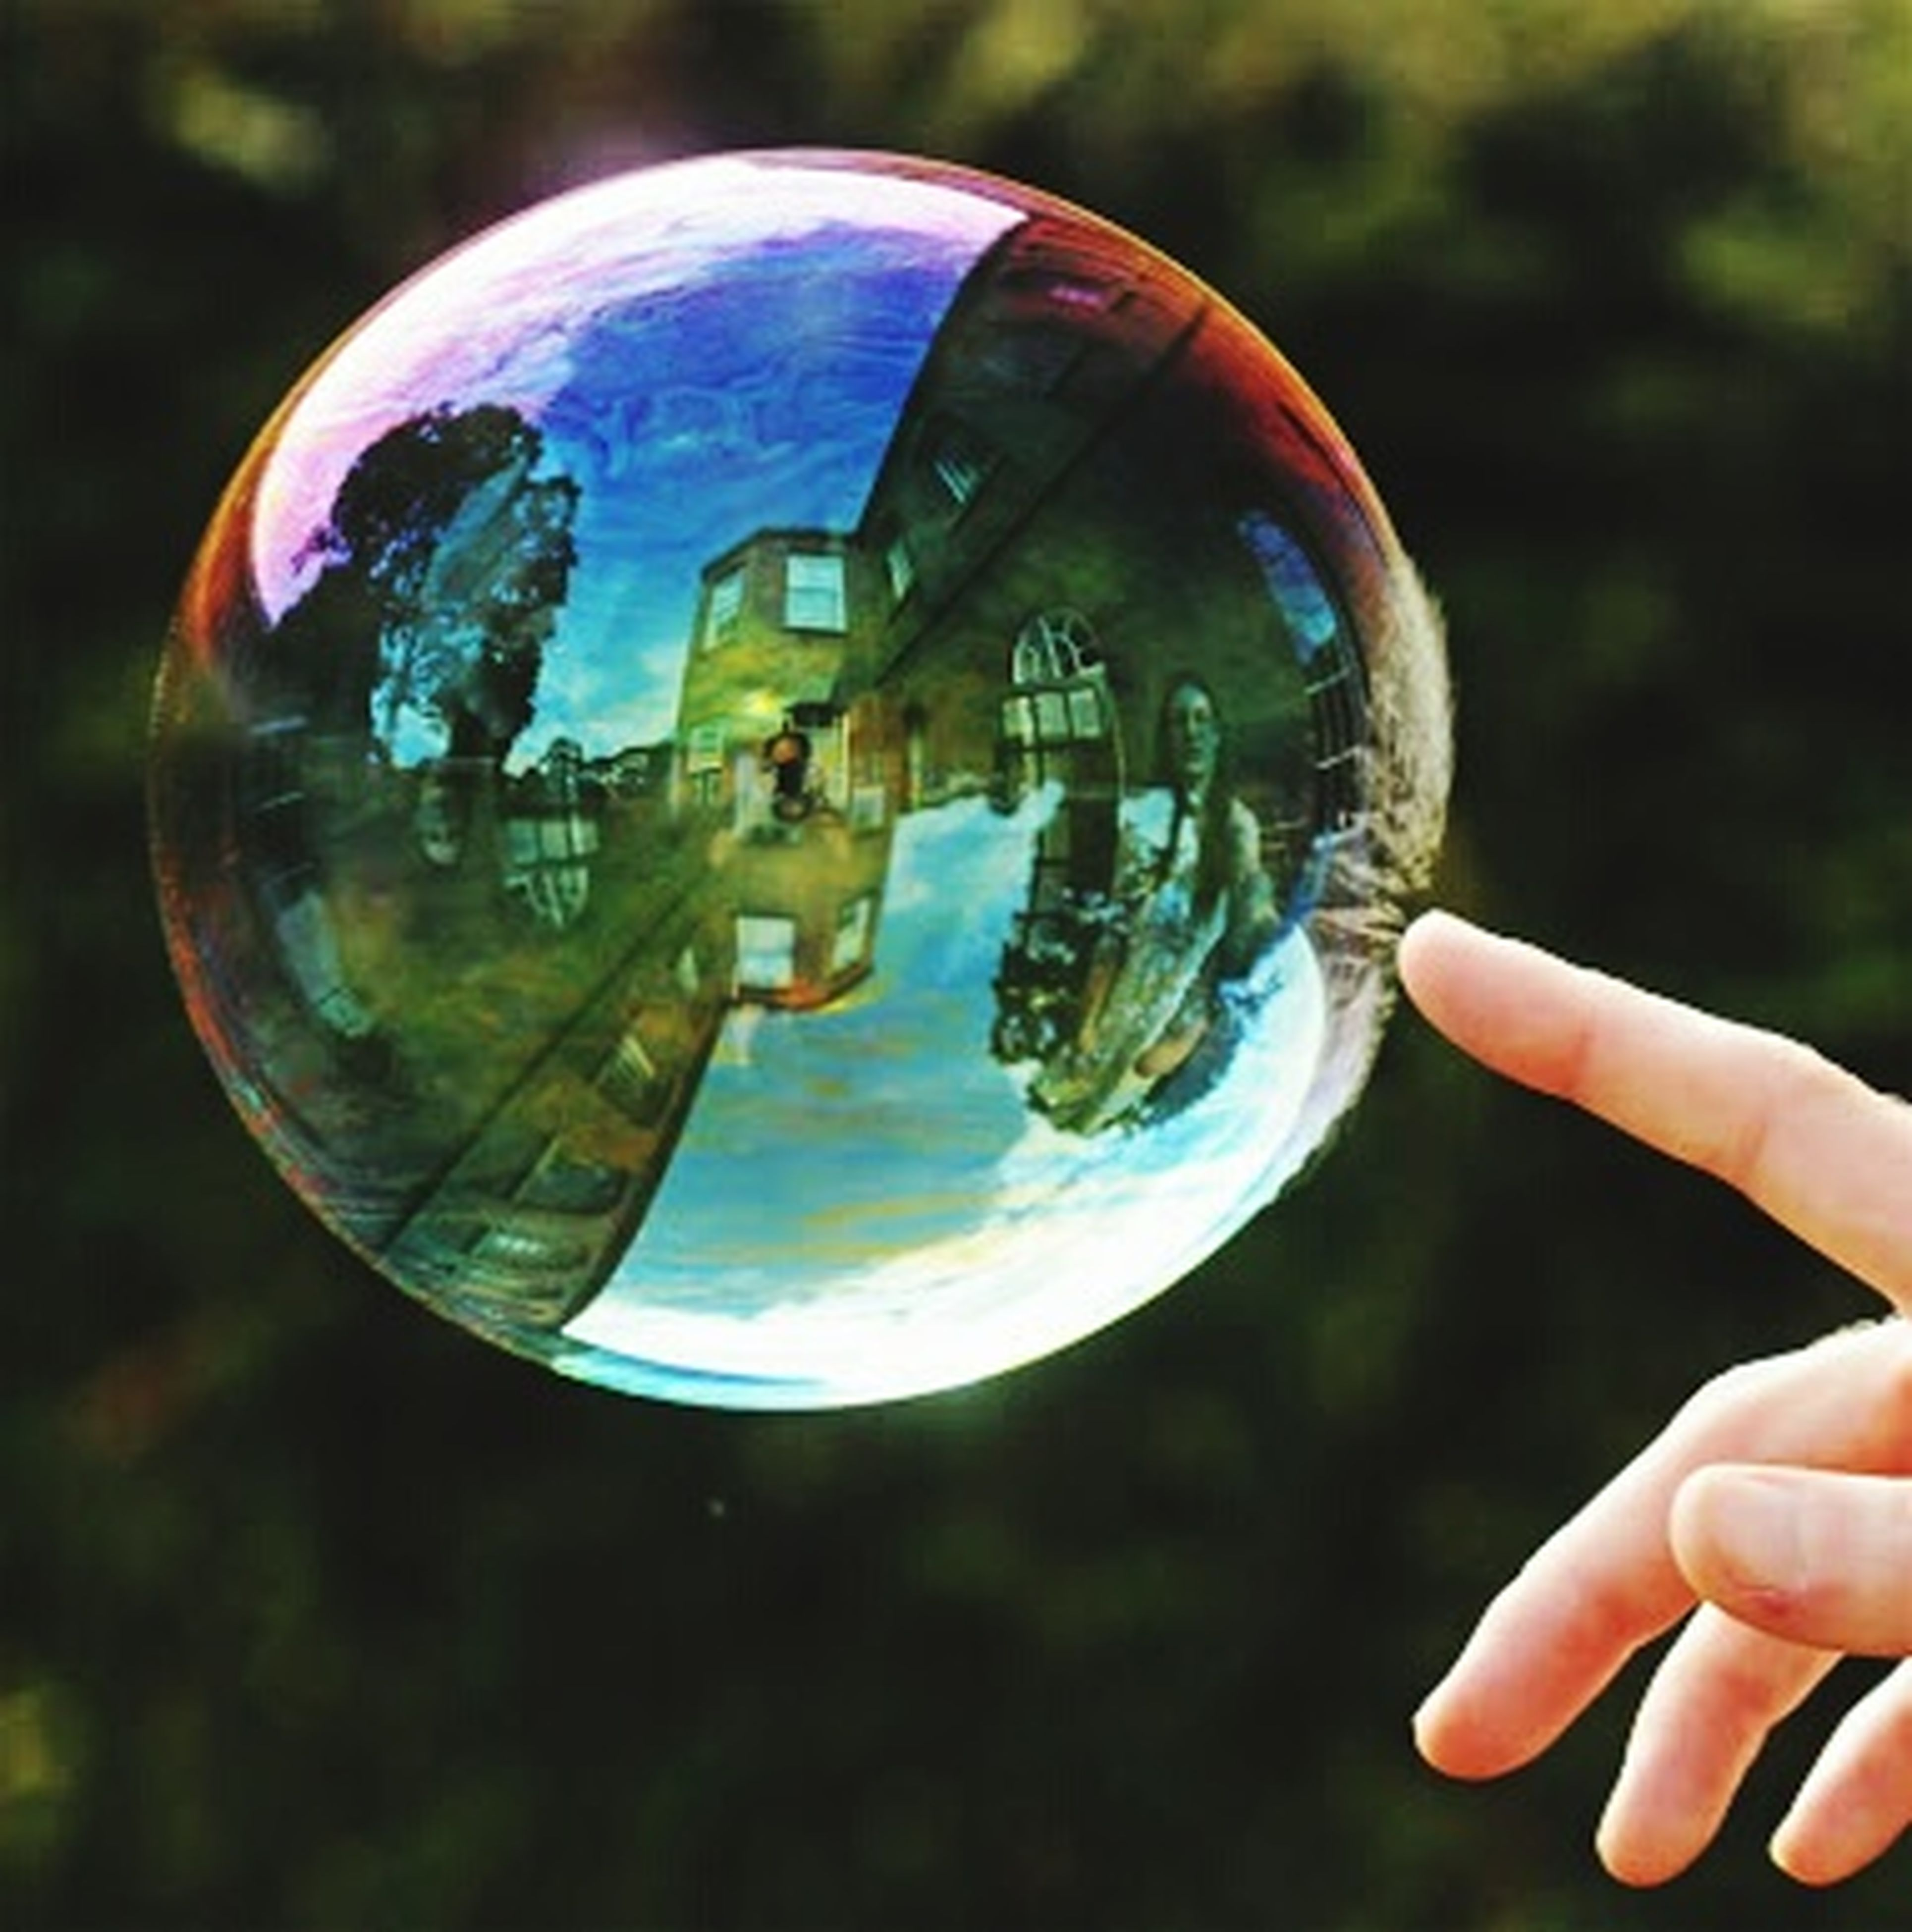 person, focus on foreground, transparent, part of, holding, close-up, bubble, mid-air, glass - material, unrecognizable person, cropped, leisure activity, human finger, lifestyles, reflection, water, sphere